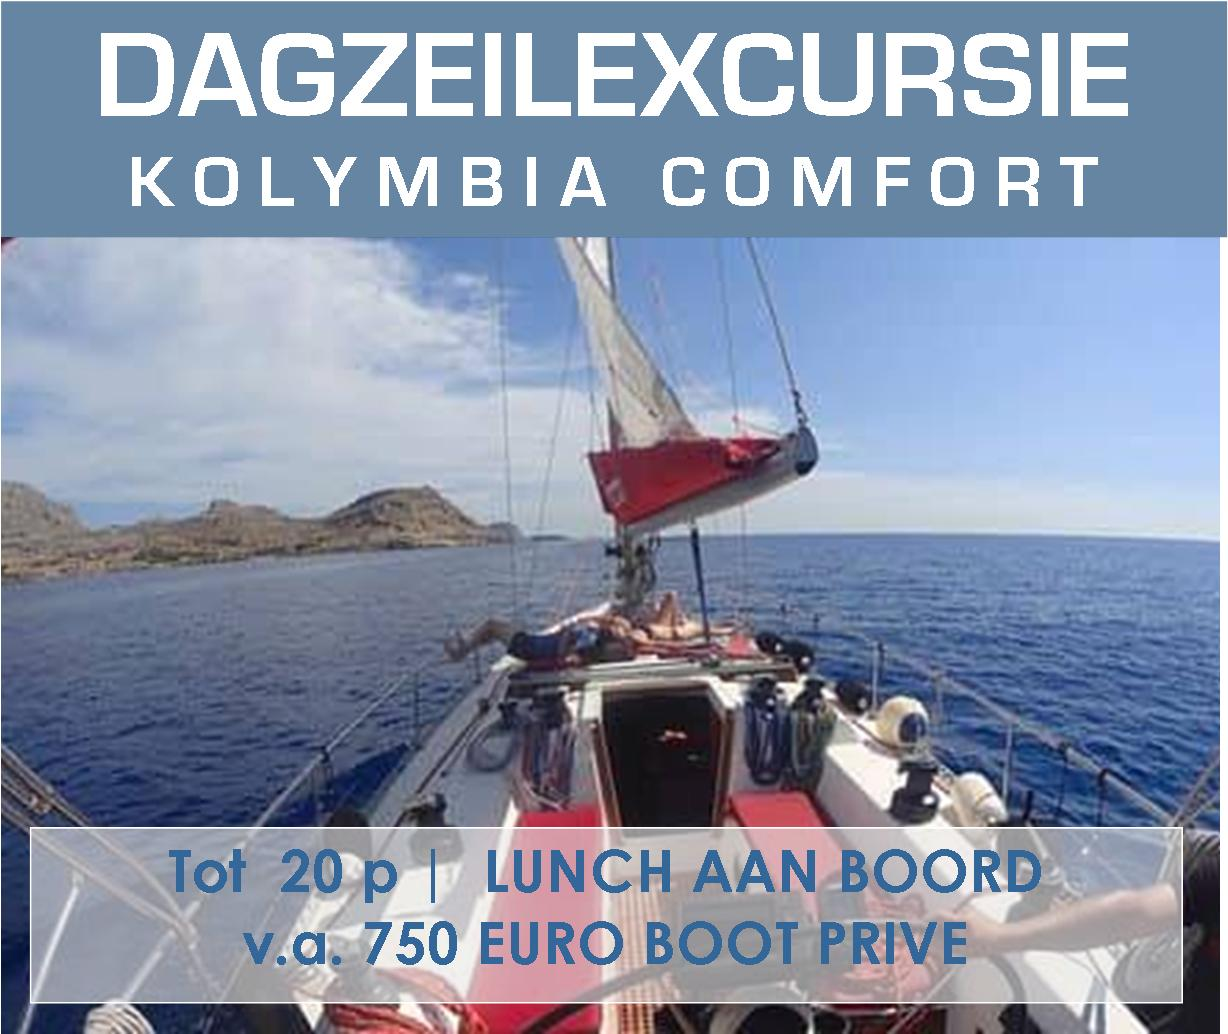 Dagzeil excursie vanaf Lindos Rhodos - Daysail excursion from Lindos Rhodes | Sail in Greece Rhodes | sail-in-greece.net